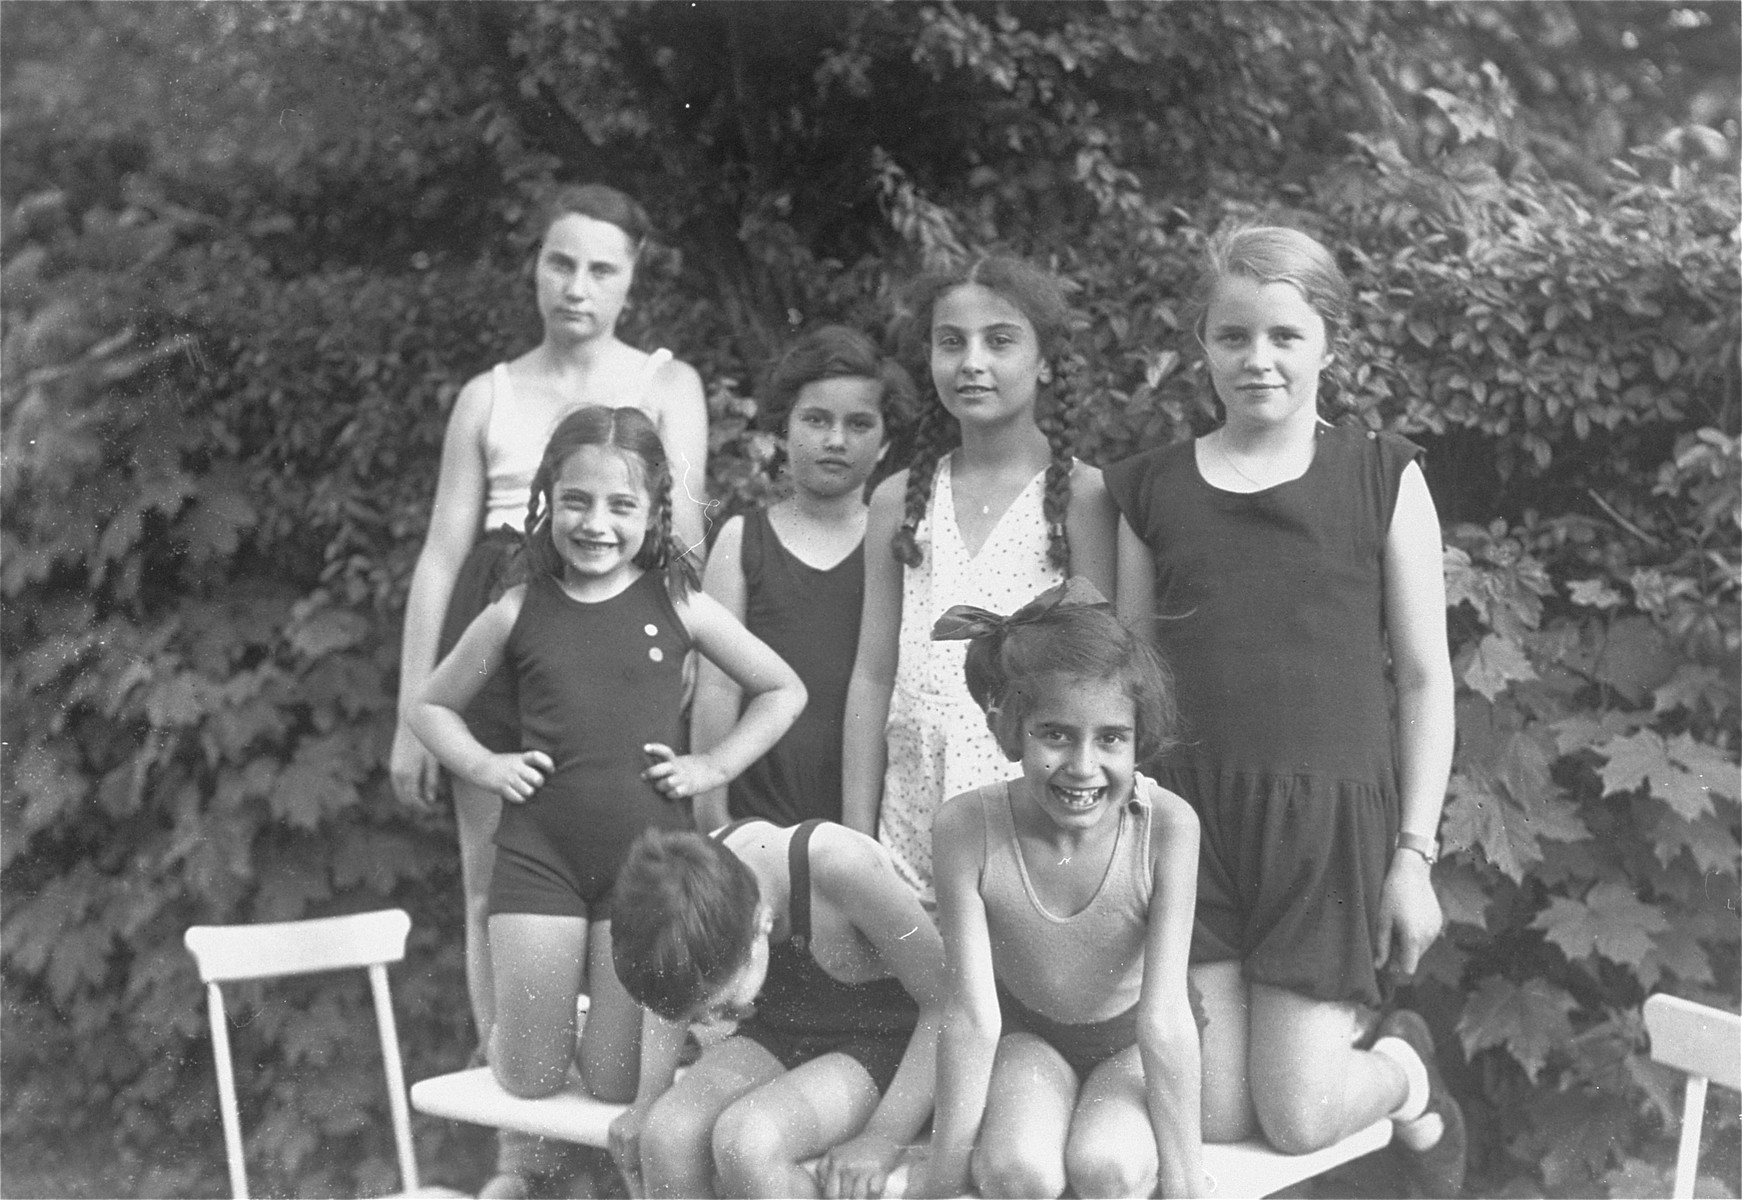 The children of Georg and Gertrude Anker pose with their friends and cousins in Berlin.   Among those pictured are Eva, Dodi and Hilde Anker and their cousin Else Karplus